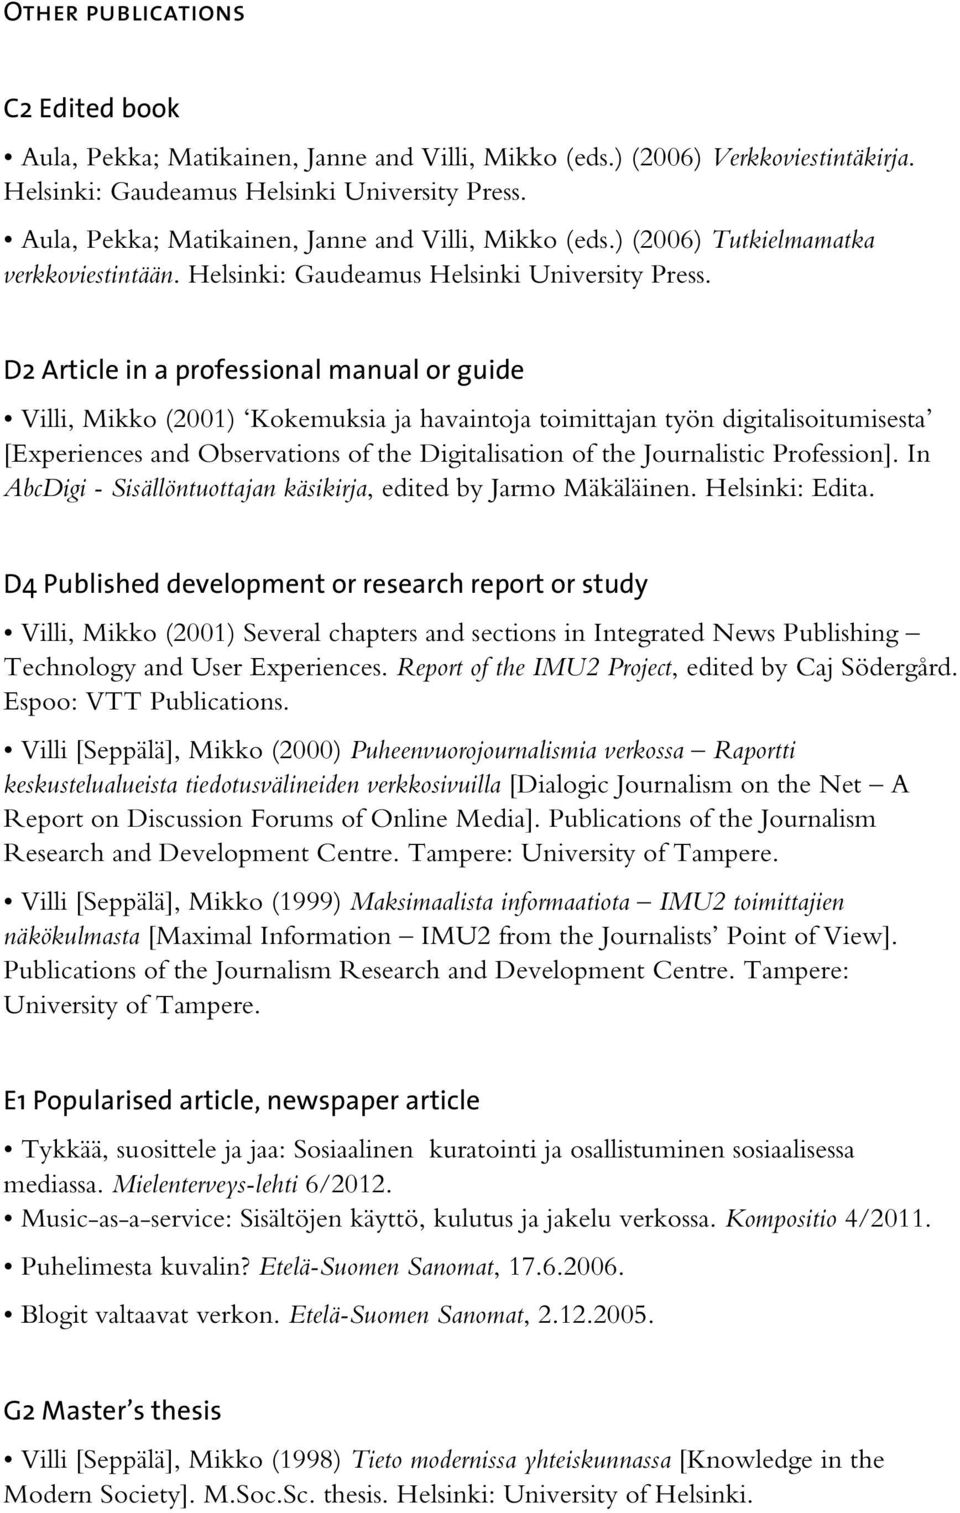 D2 Article in a professional manual or guide Villi, Mikko (2001) Kokemuksia ja havaintoja toimittajan työn digitalisoitumisesta [Experiences and Observations of the Digitalisation of the Journalistic